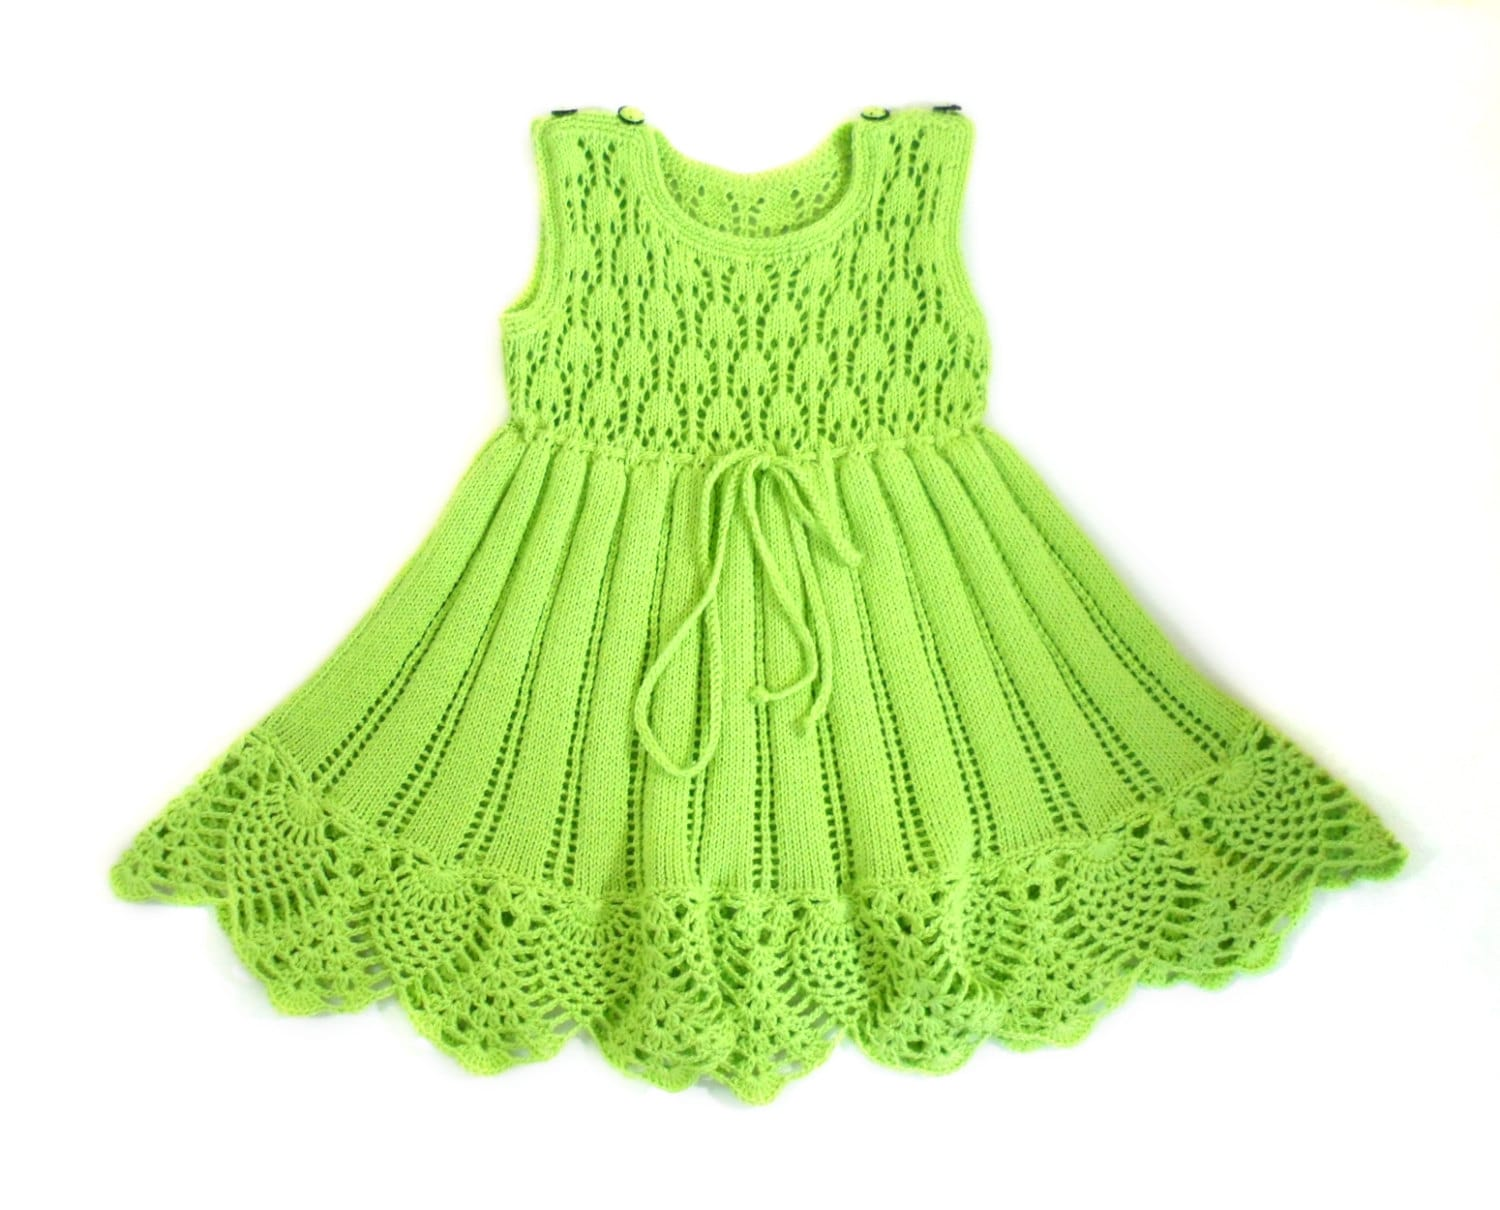 Knitting Dress Baby : Knitted cotton baby dress lace with